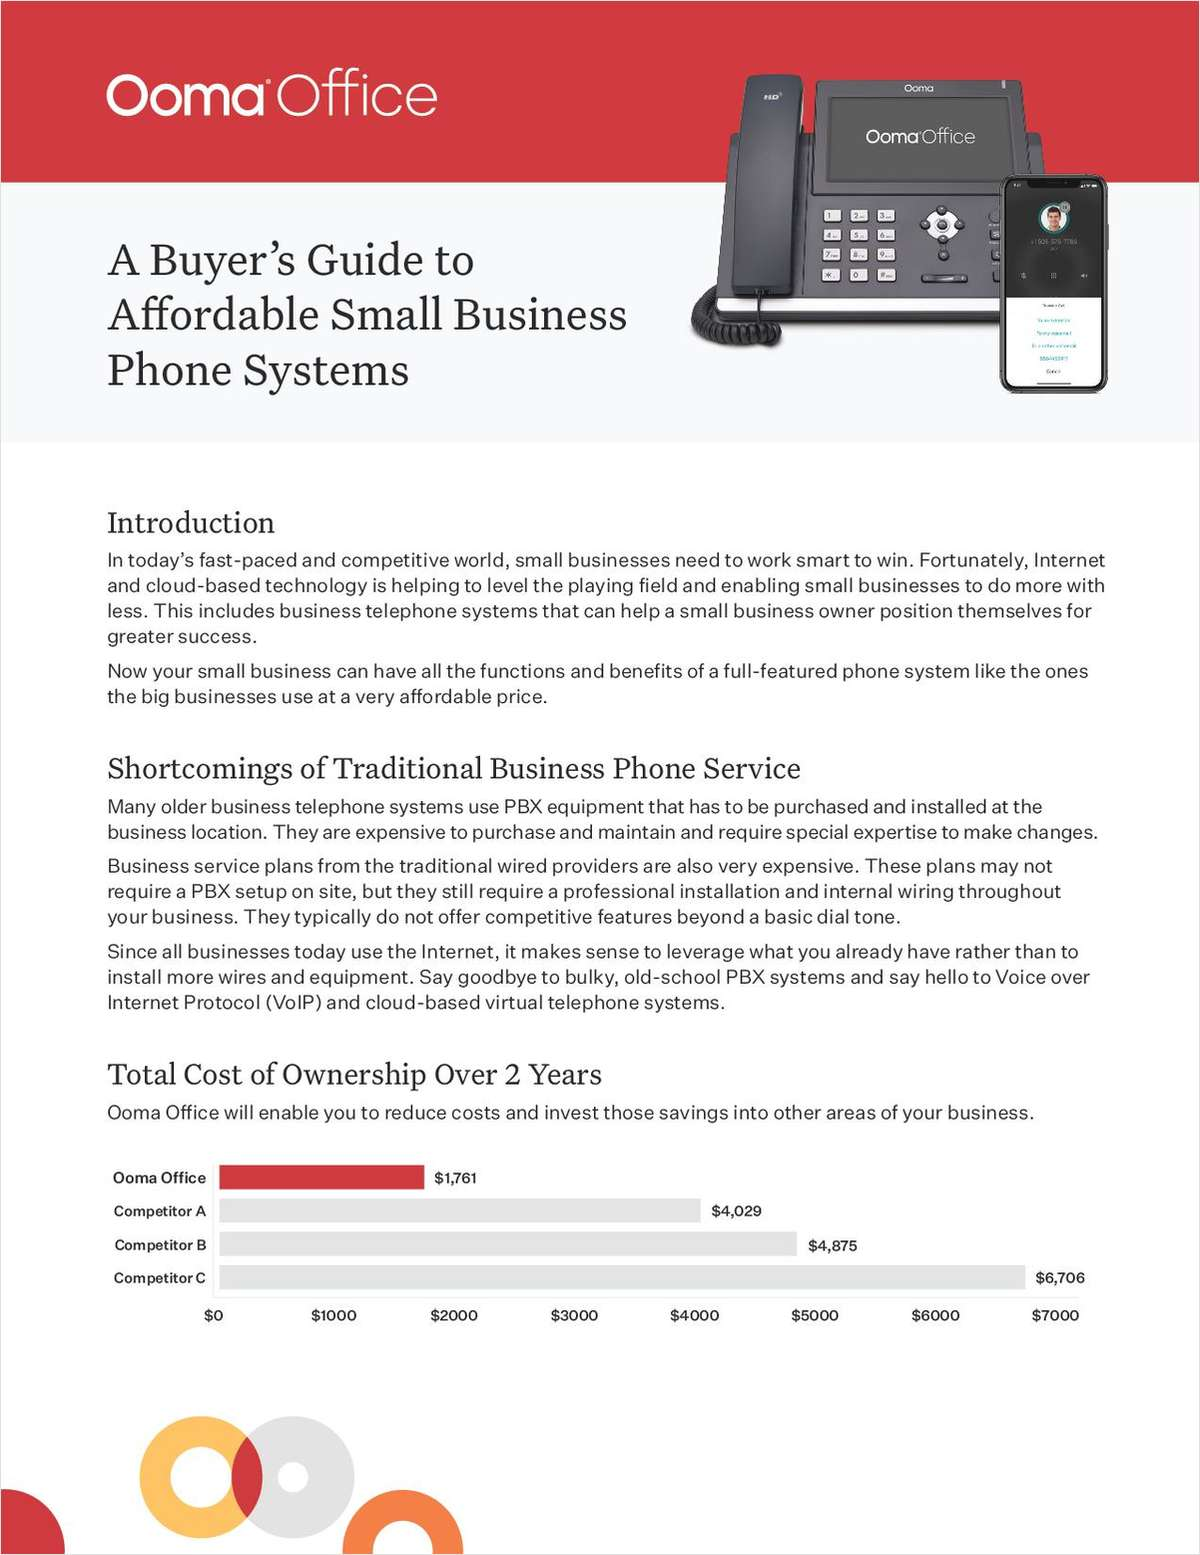 A Buyer's Guide to Affordable Phone Systems